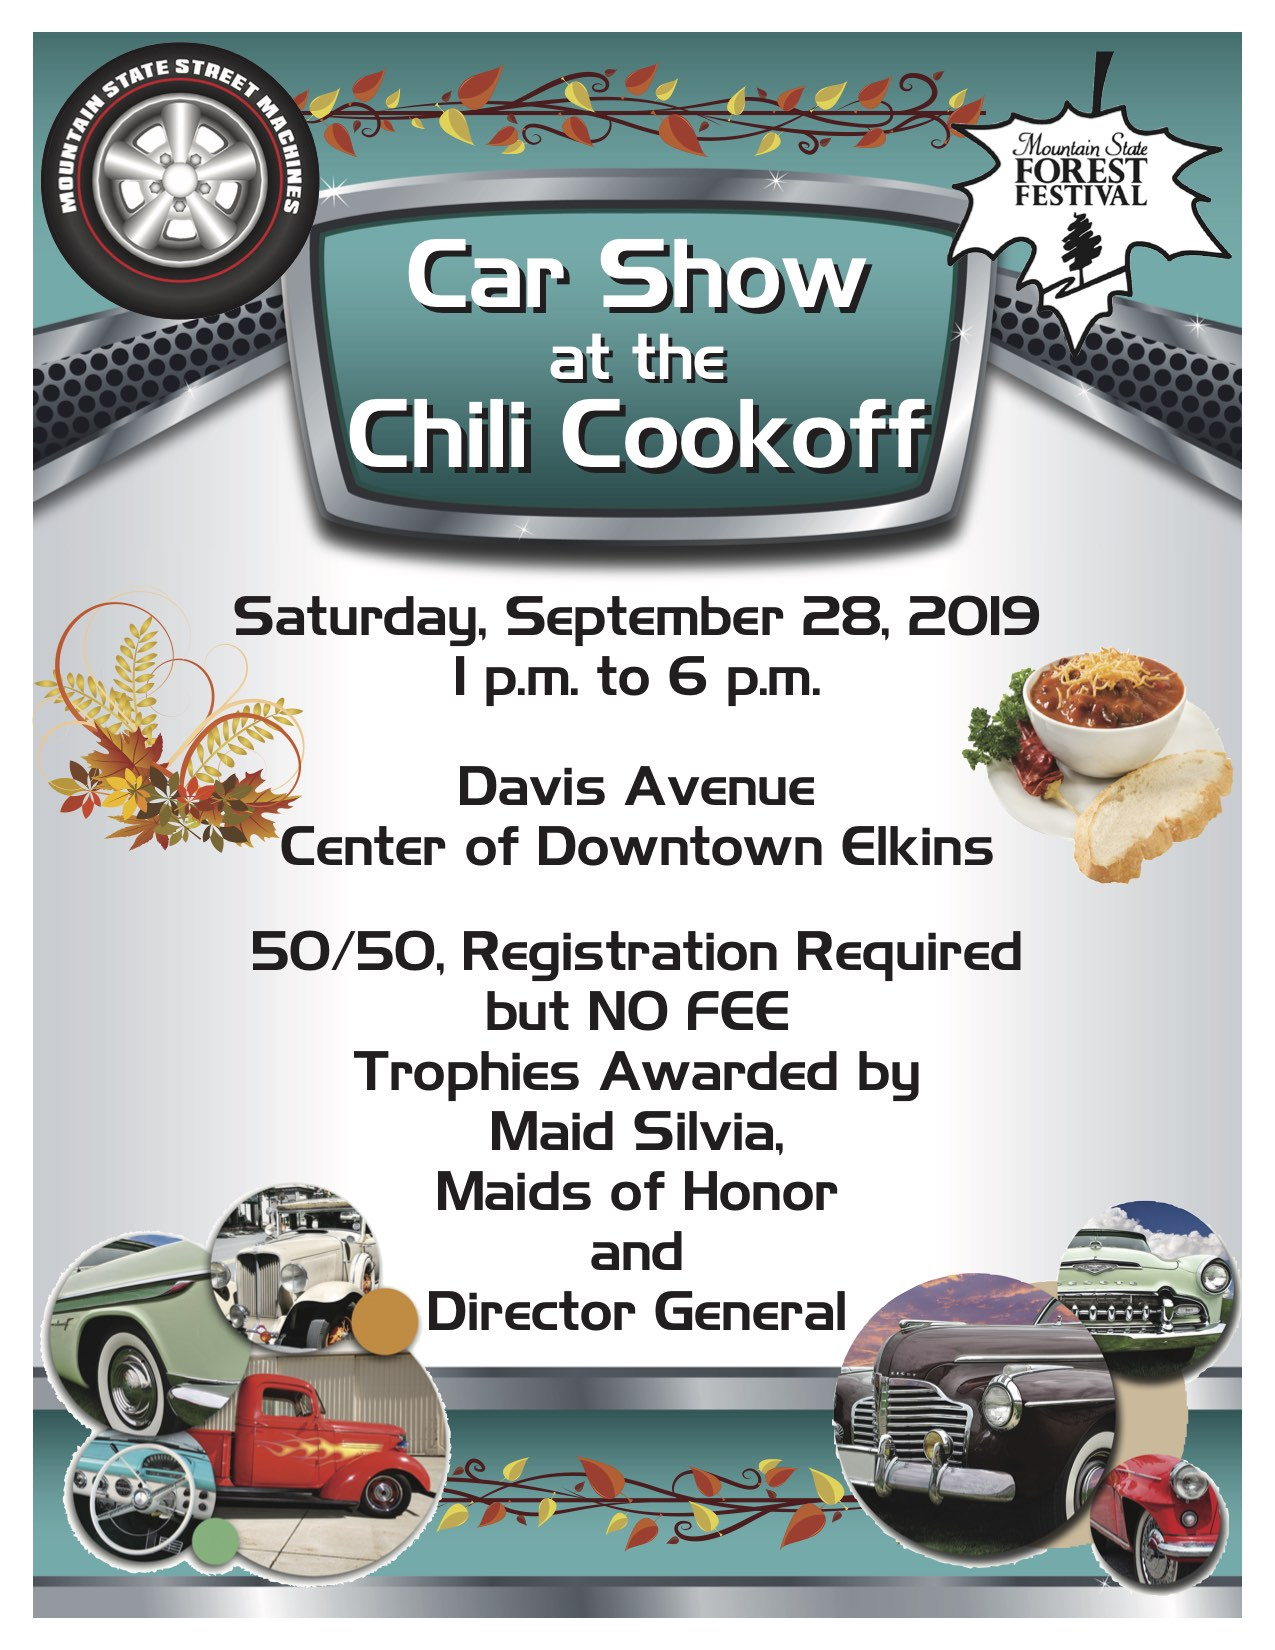 Car Show at the Chili Cookoff